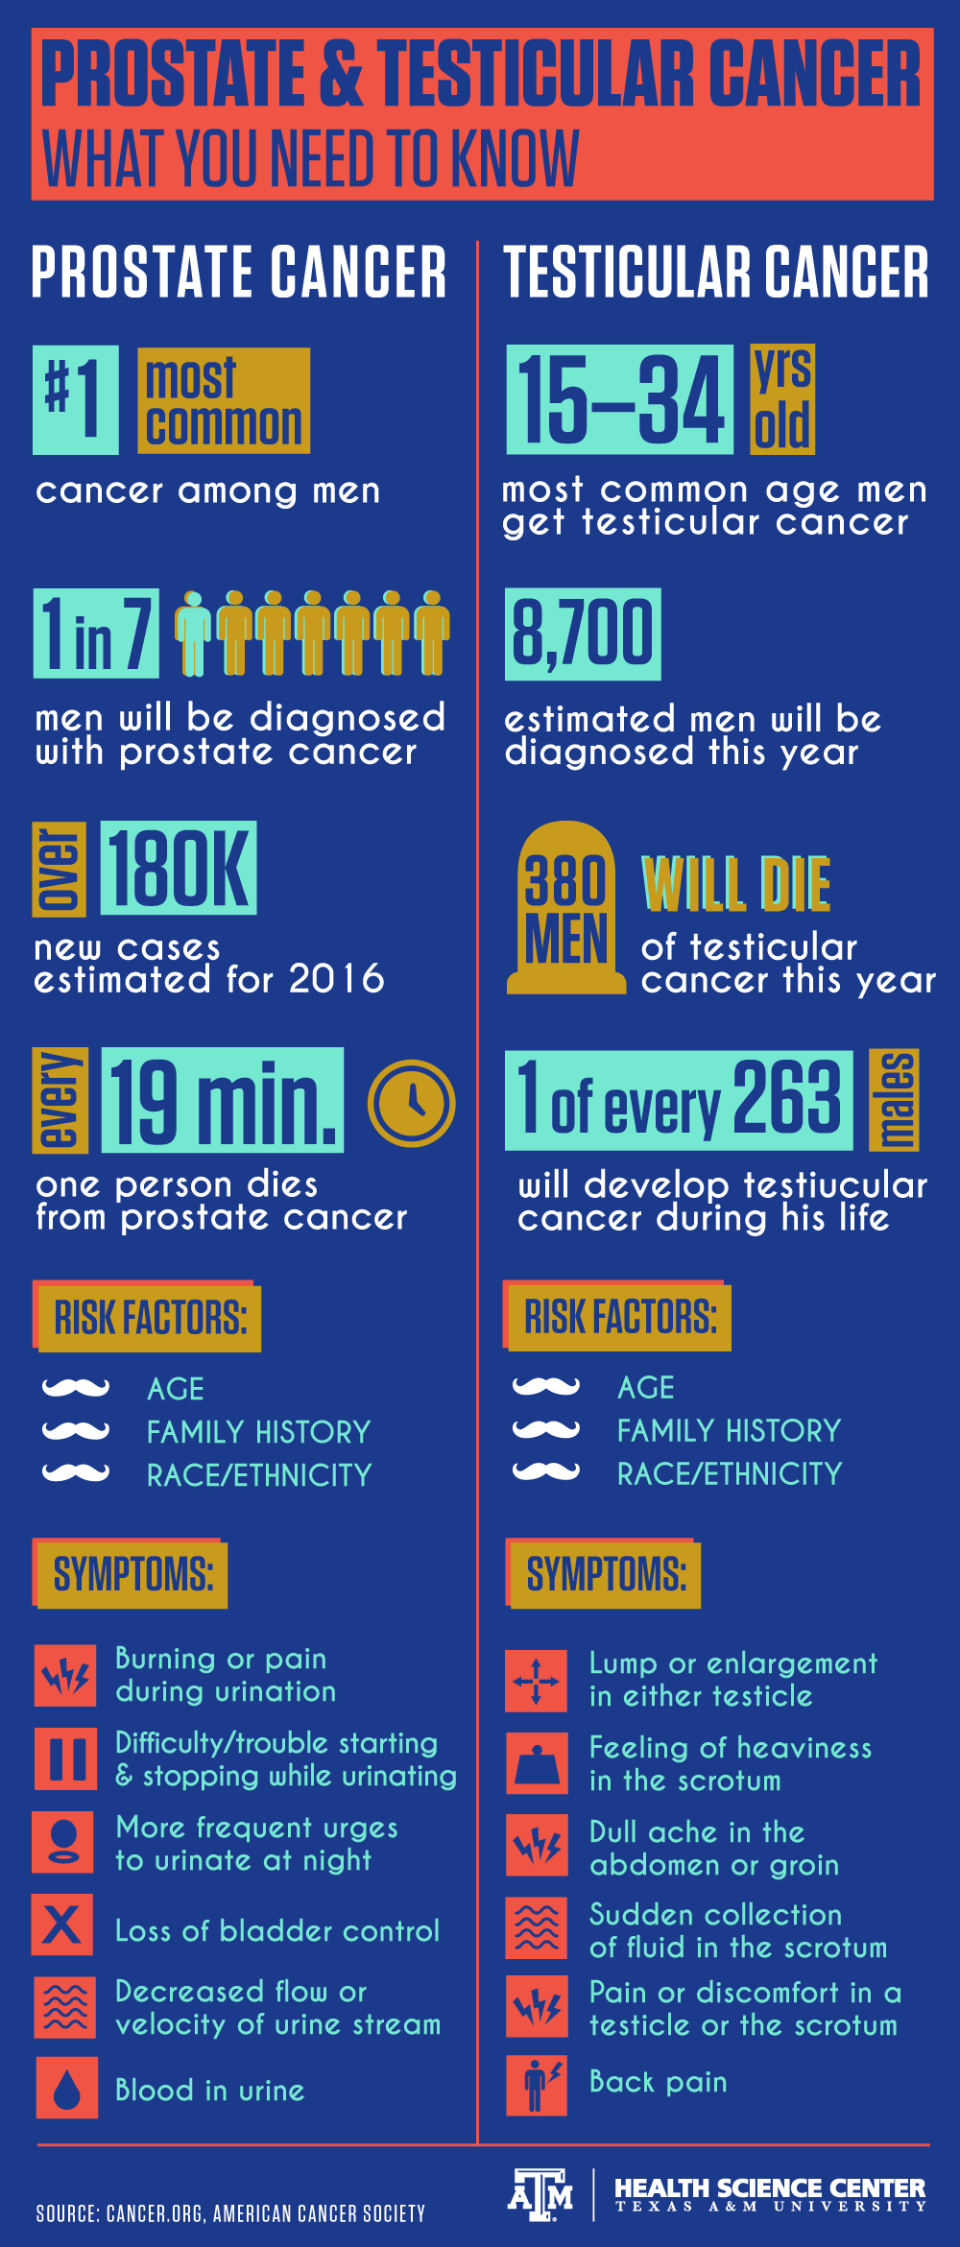 Prostate and Testicular Cancer